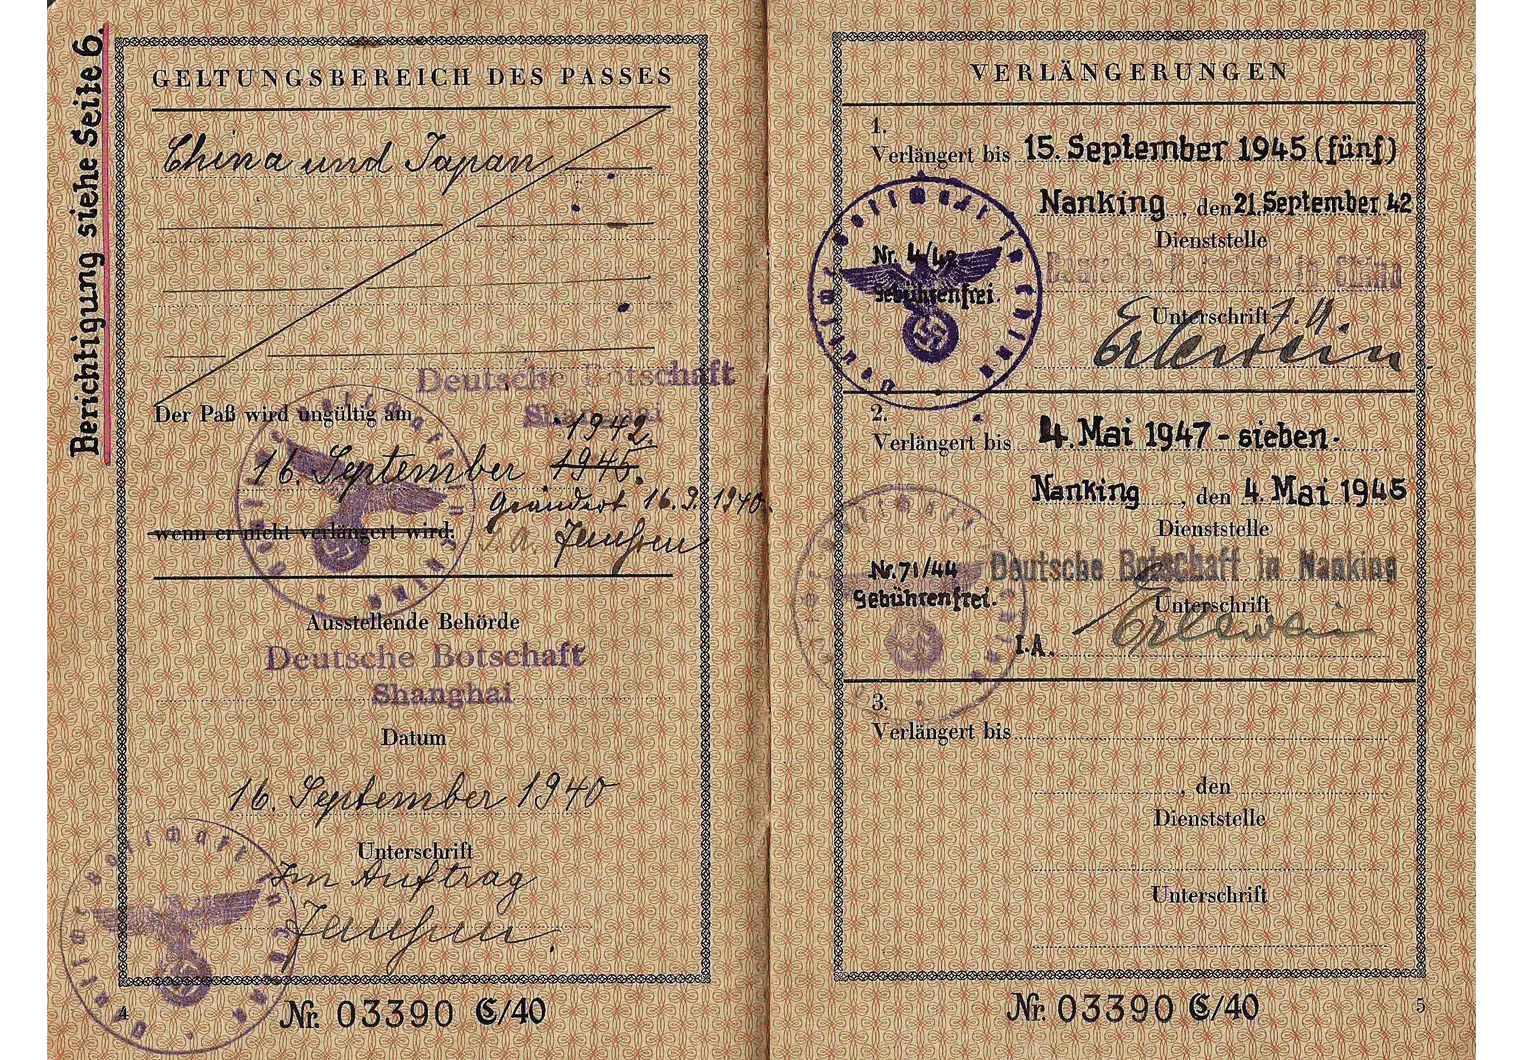 WW2 German Dienstpass passport